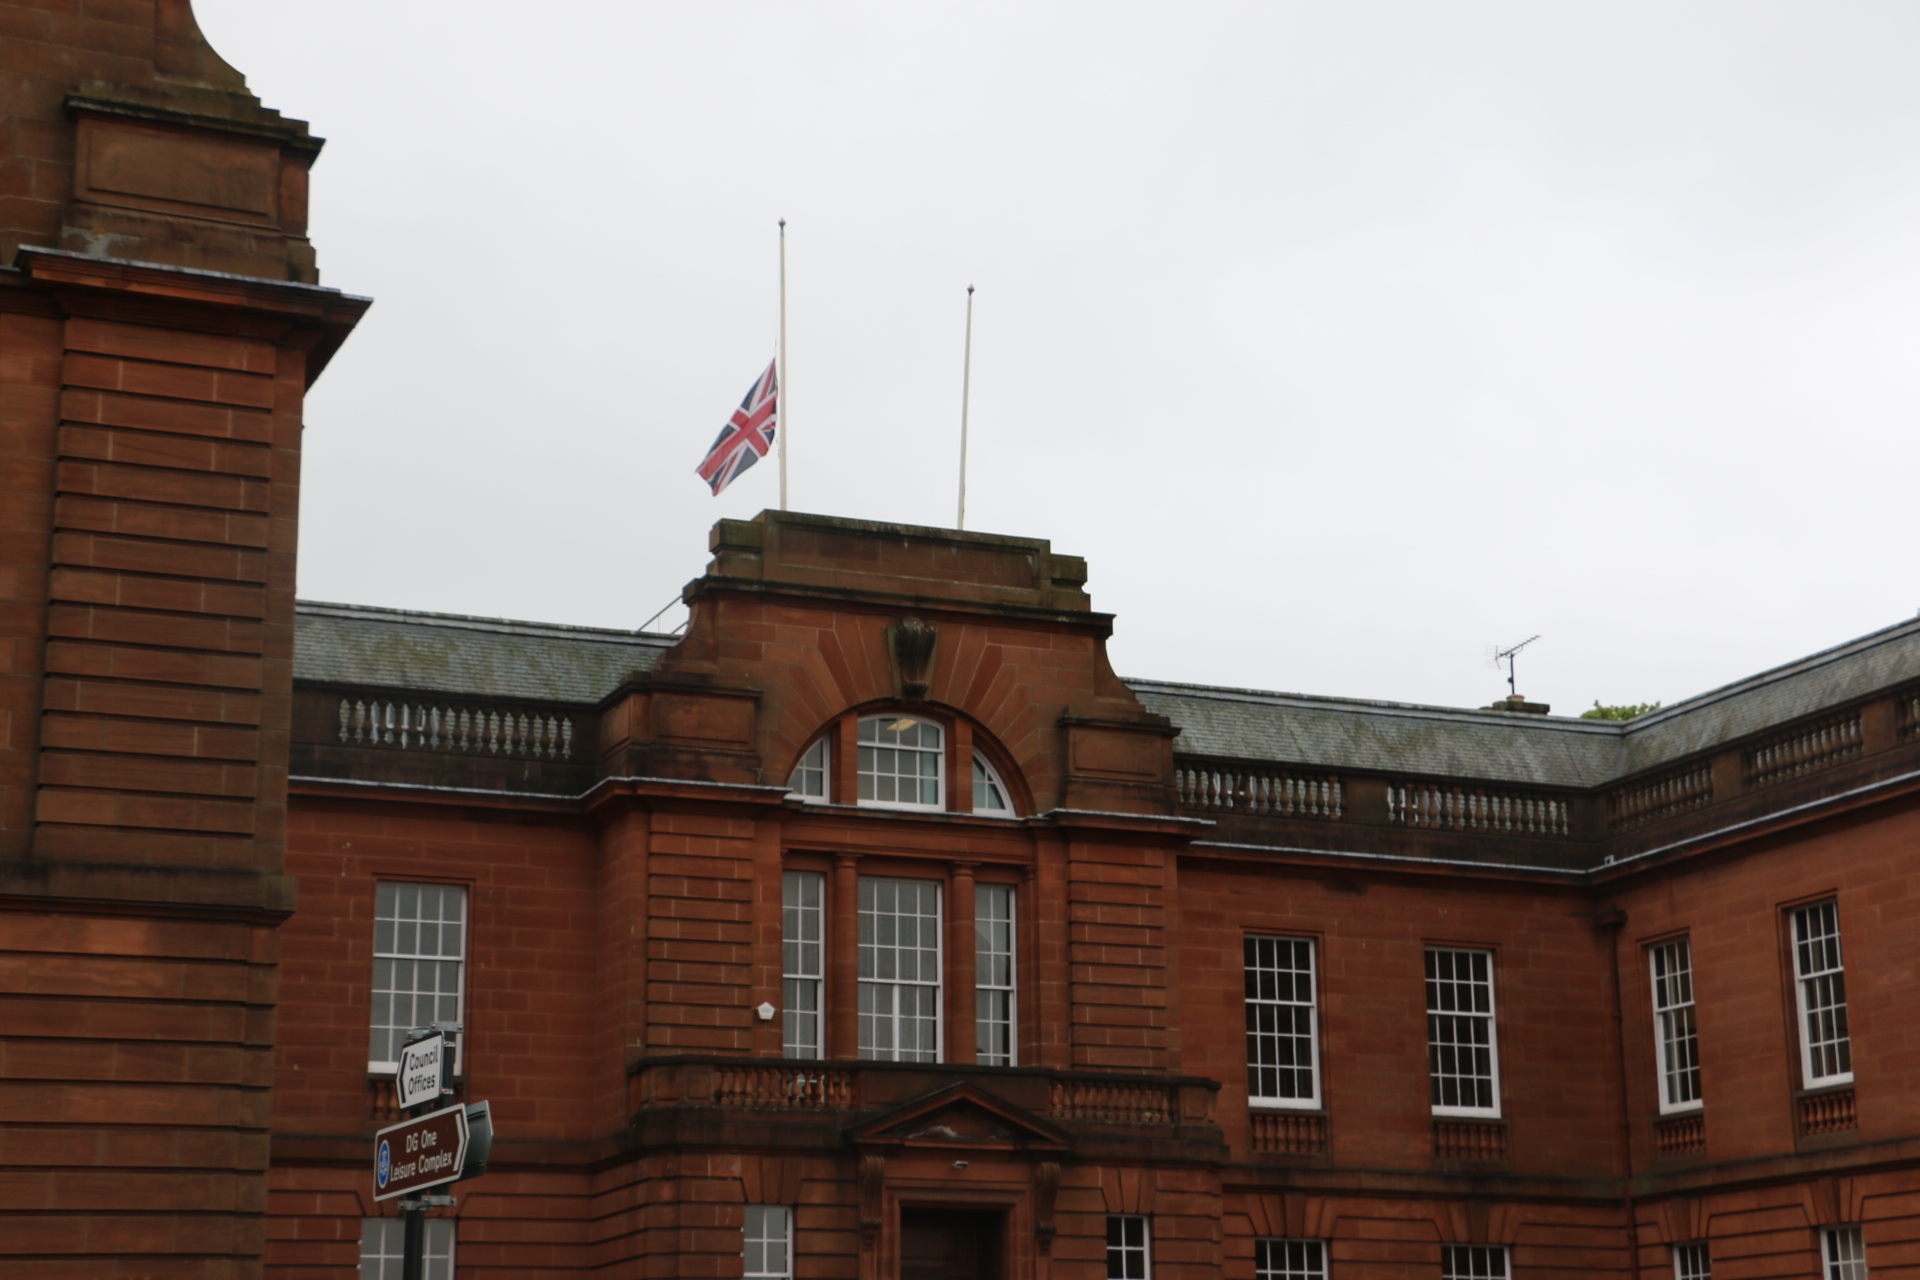 Council workers hit by covid stress